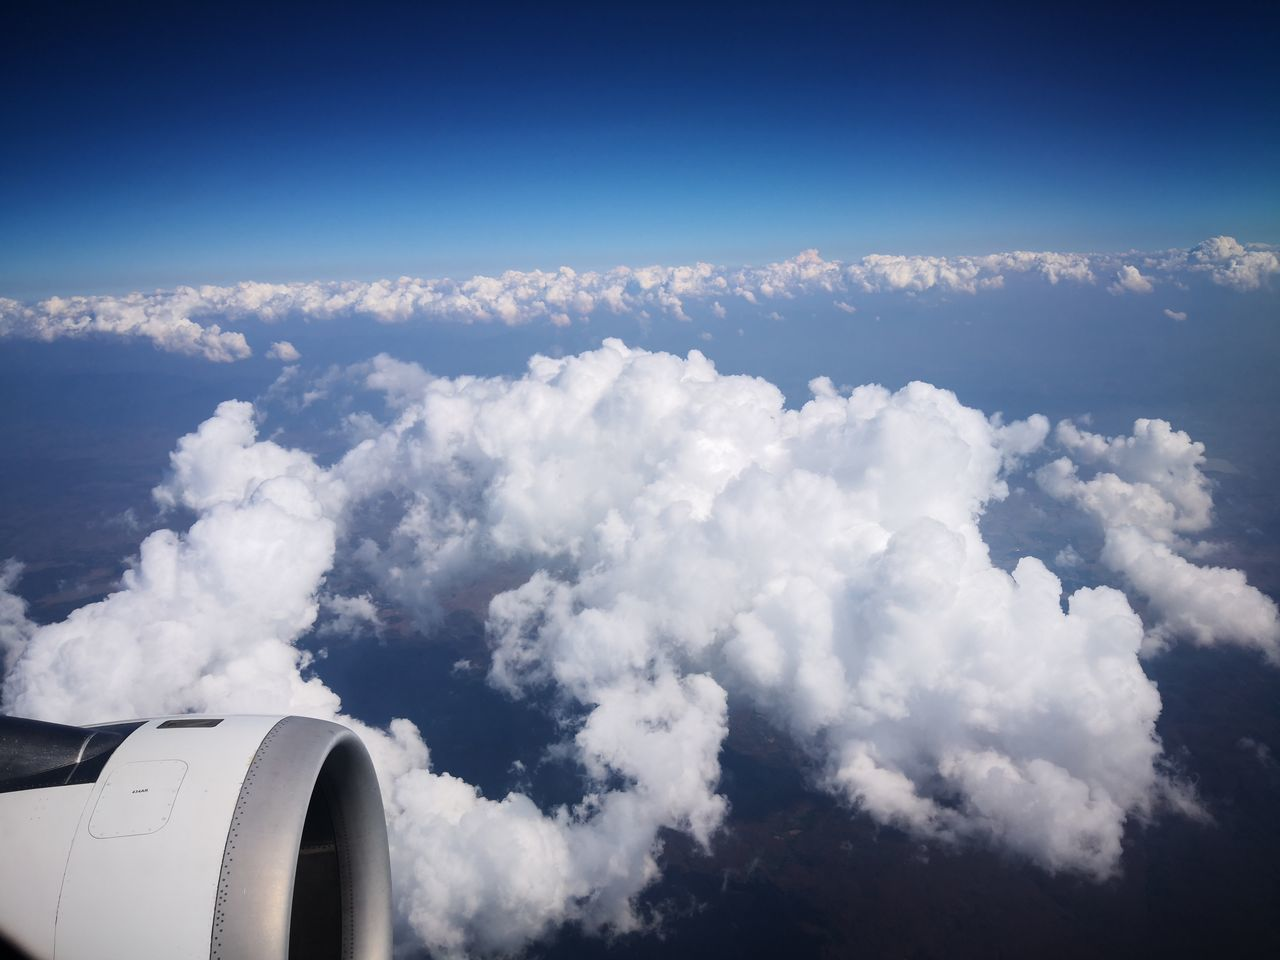 AERIAL VIEW OF CLOUDSCAPE OVER AIRPLANE FLYING IN SKY